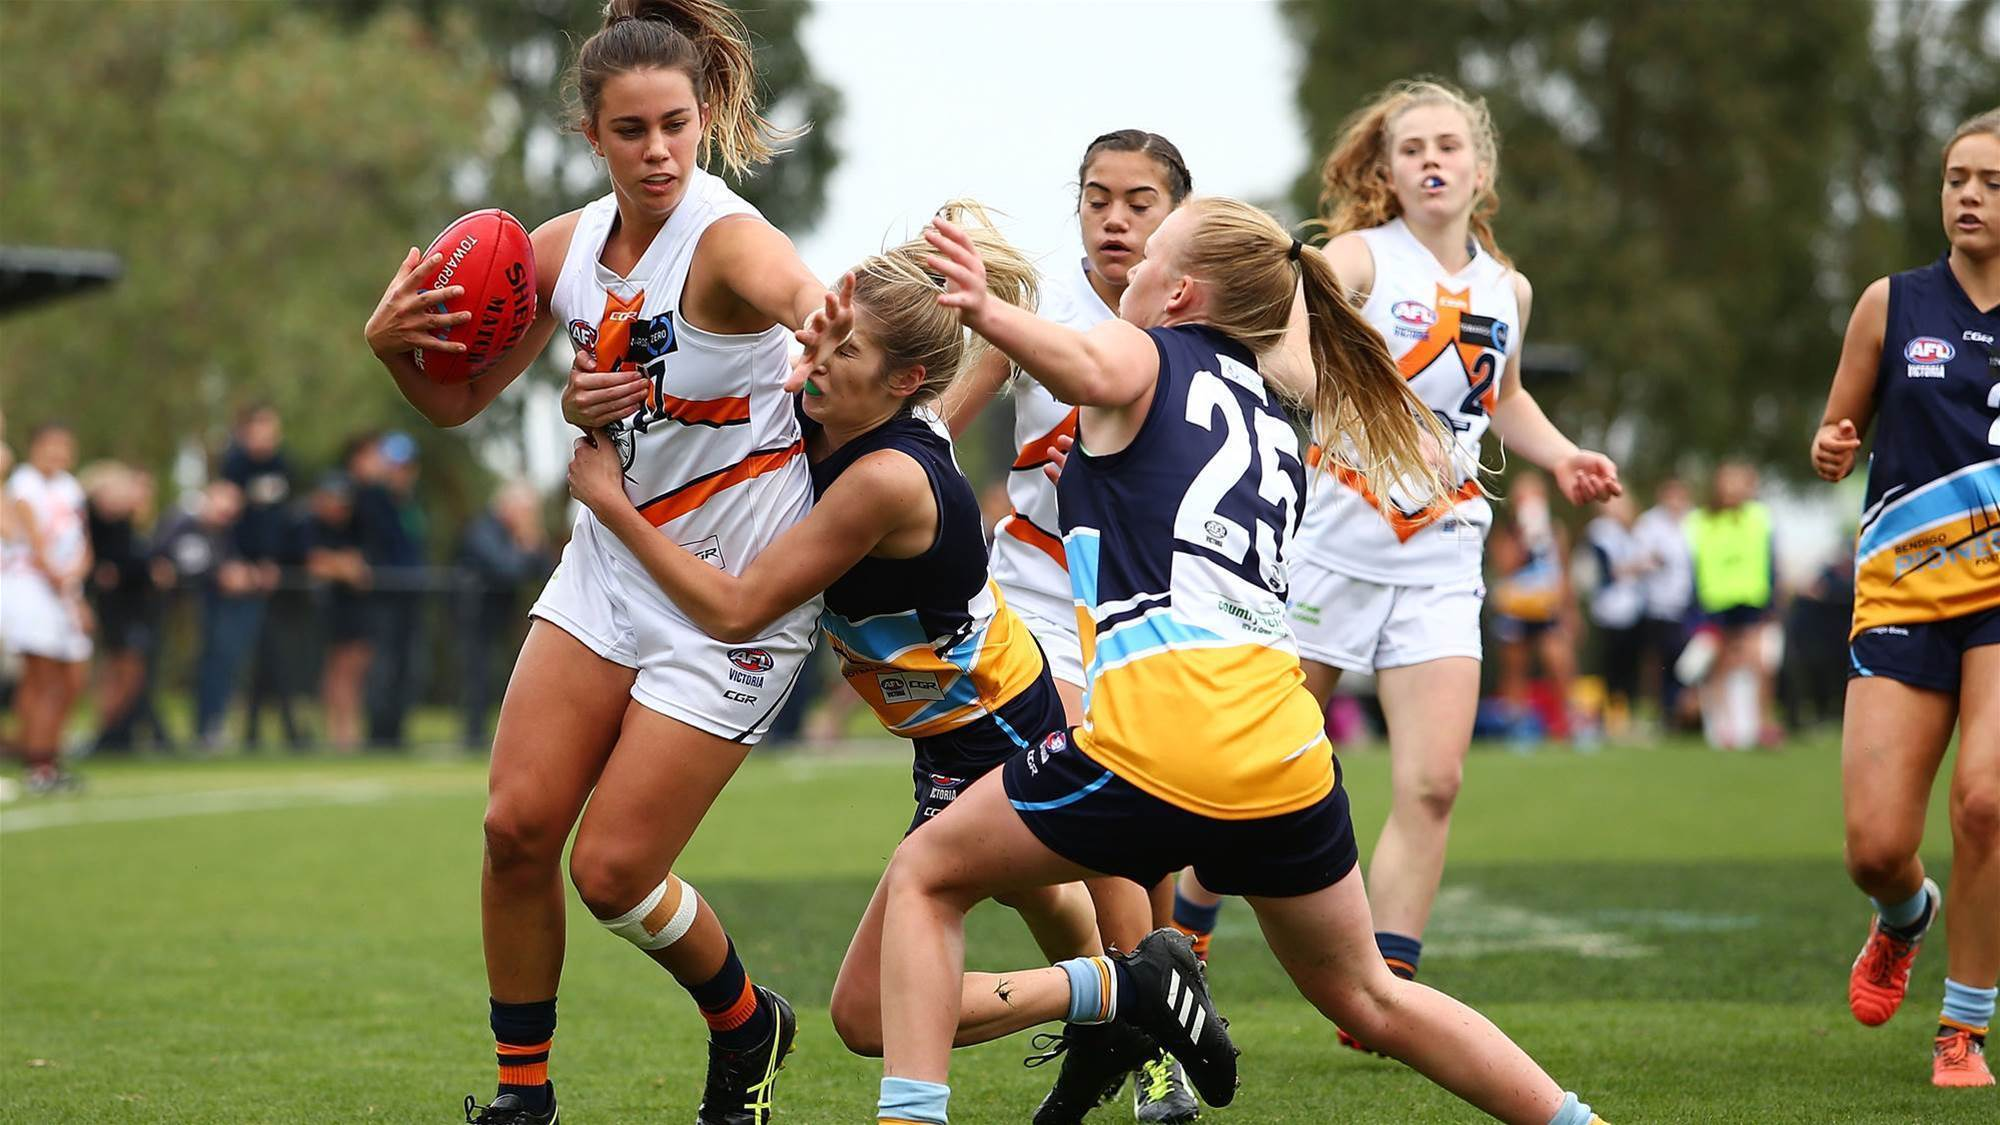 Female participation grows in Aussie Rules